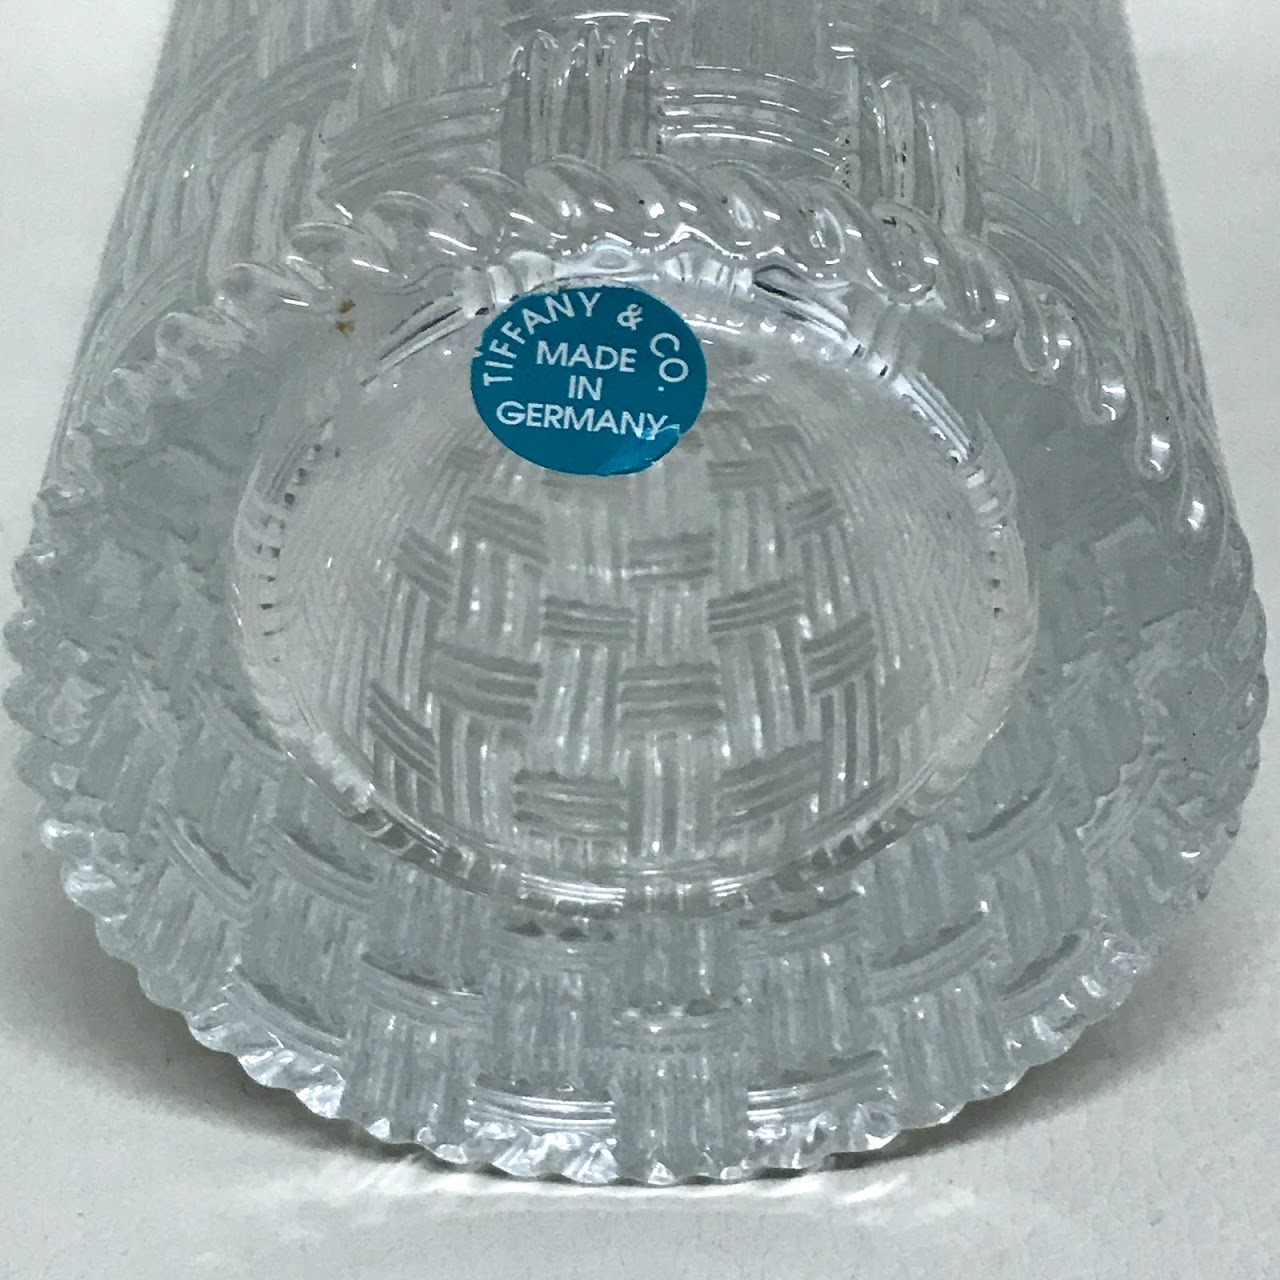 Tiffany co woven cylinder vase shophousingworks share it reviewsmspy